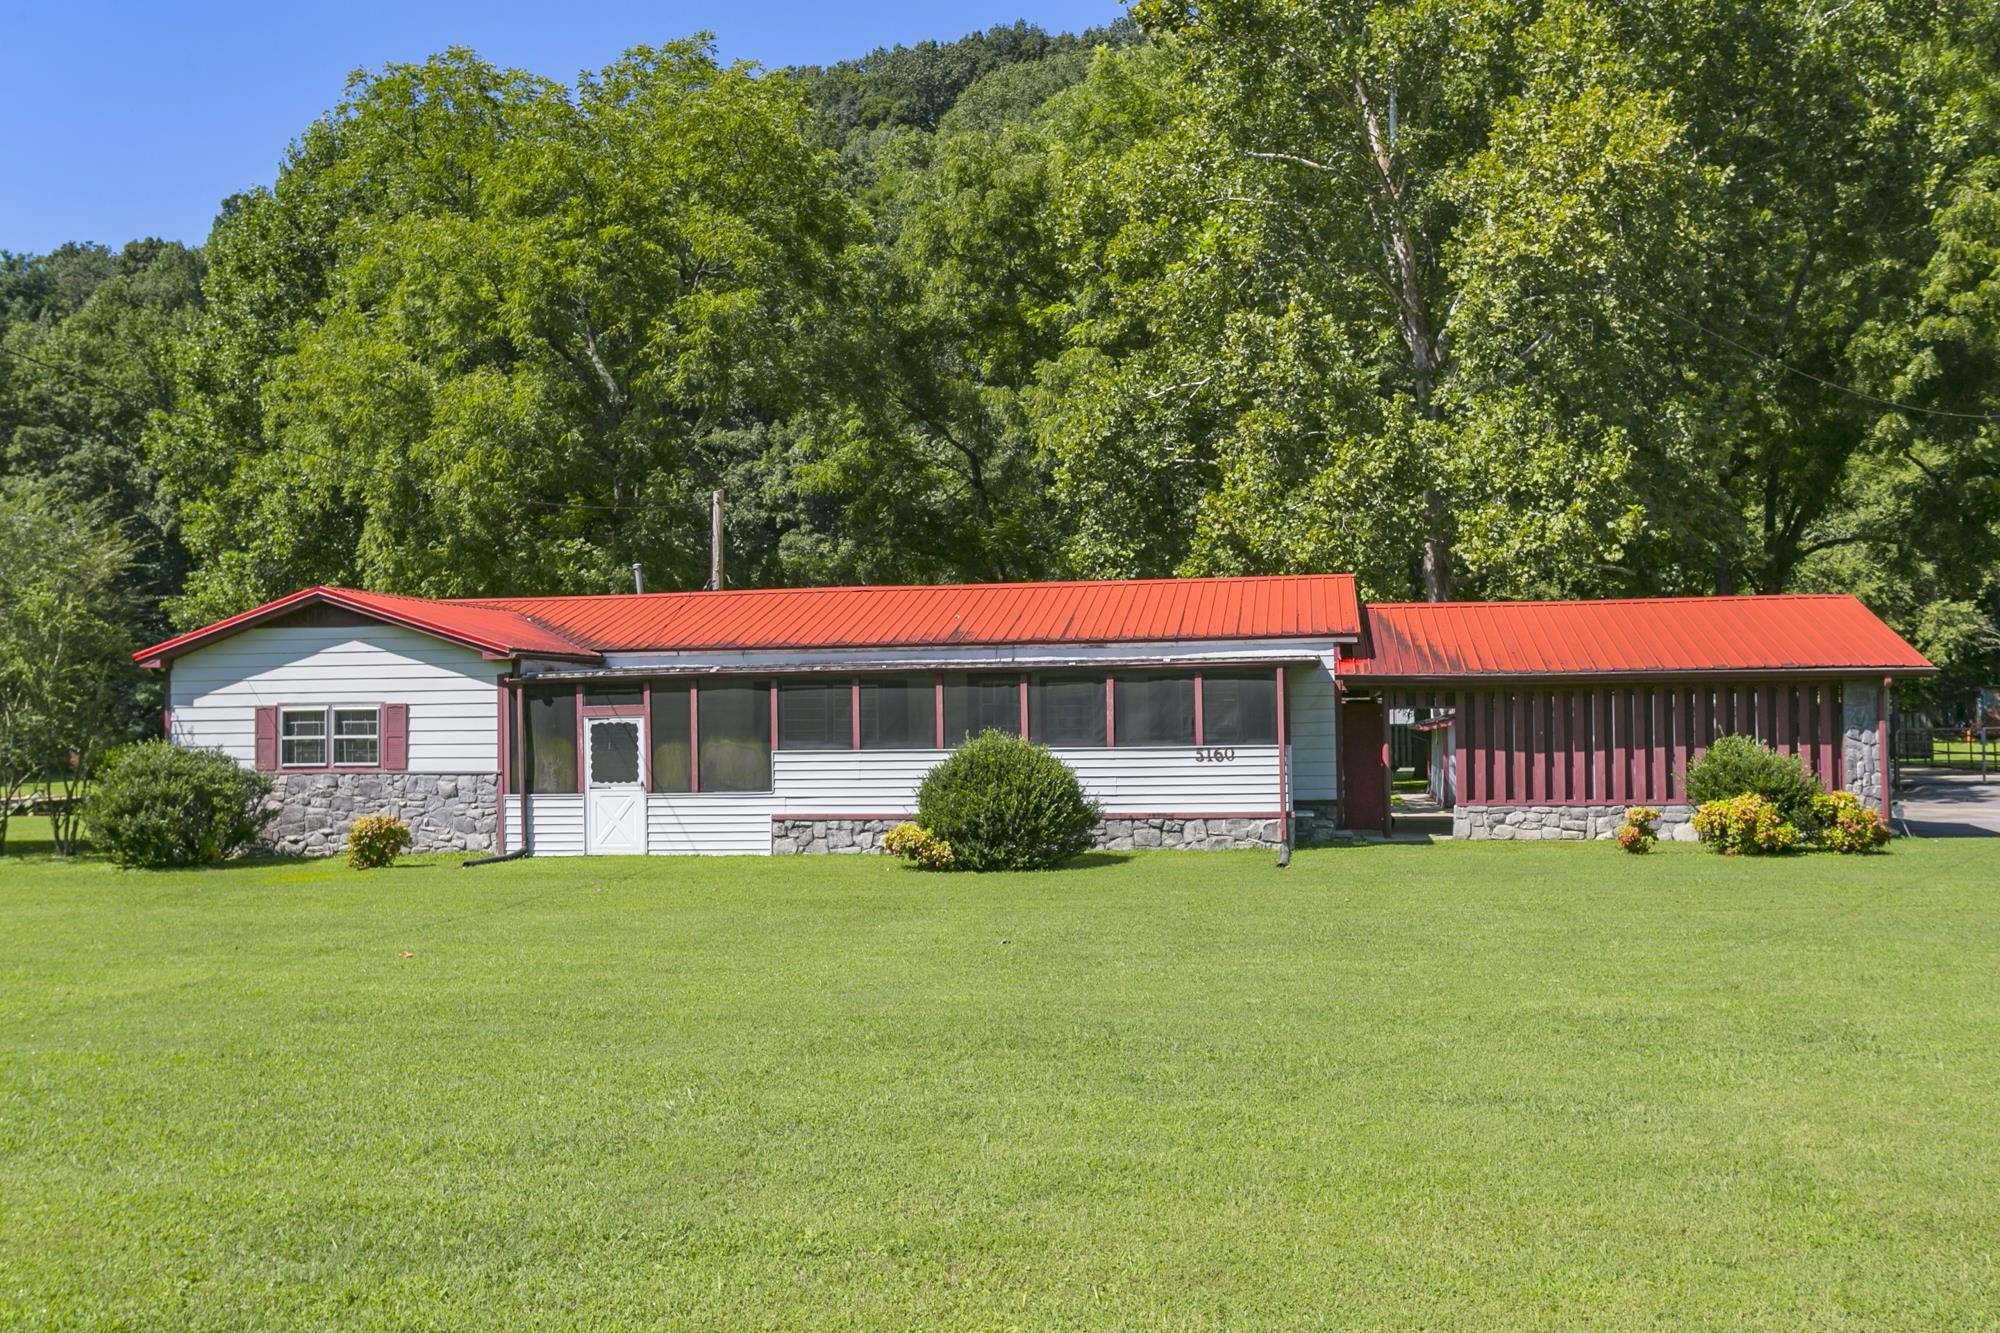 $172,900 - 2Br/2Ba -  for Sale in Vernon Curley, Whites Creek